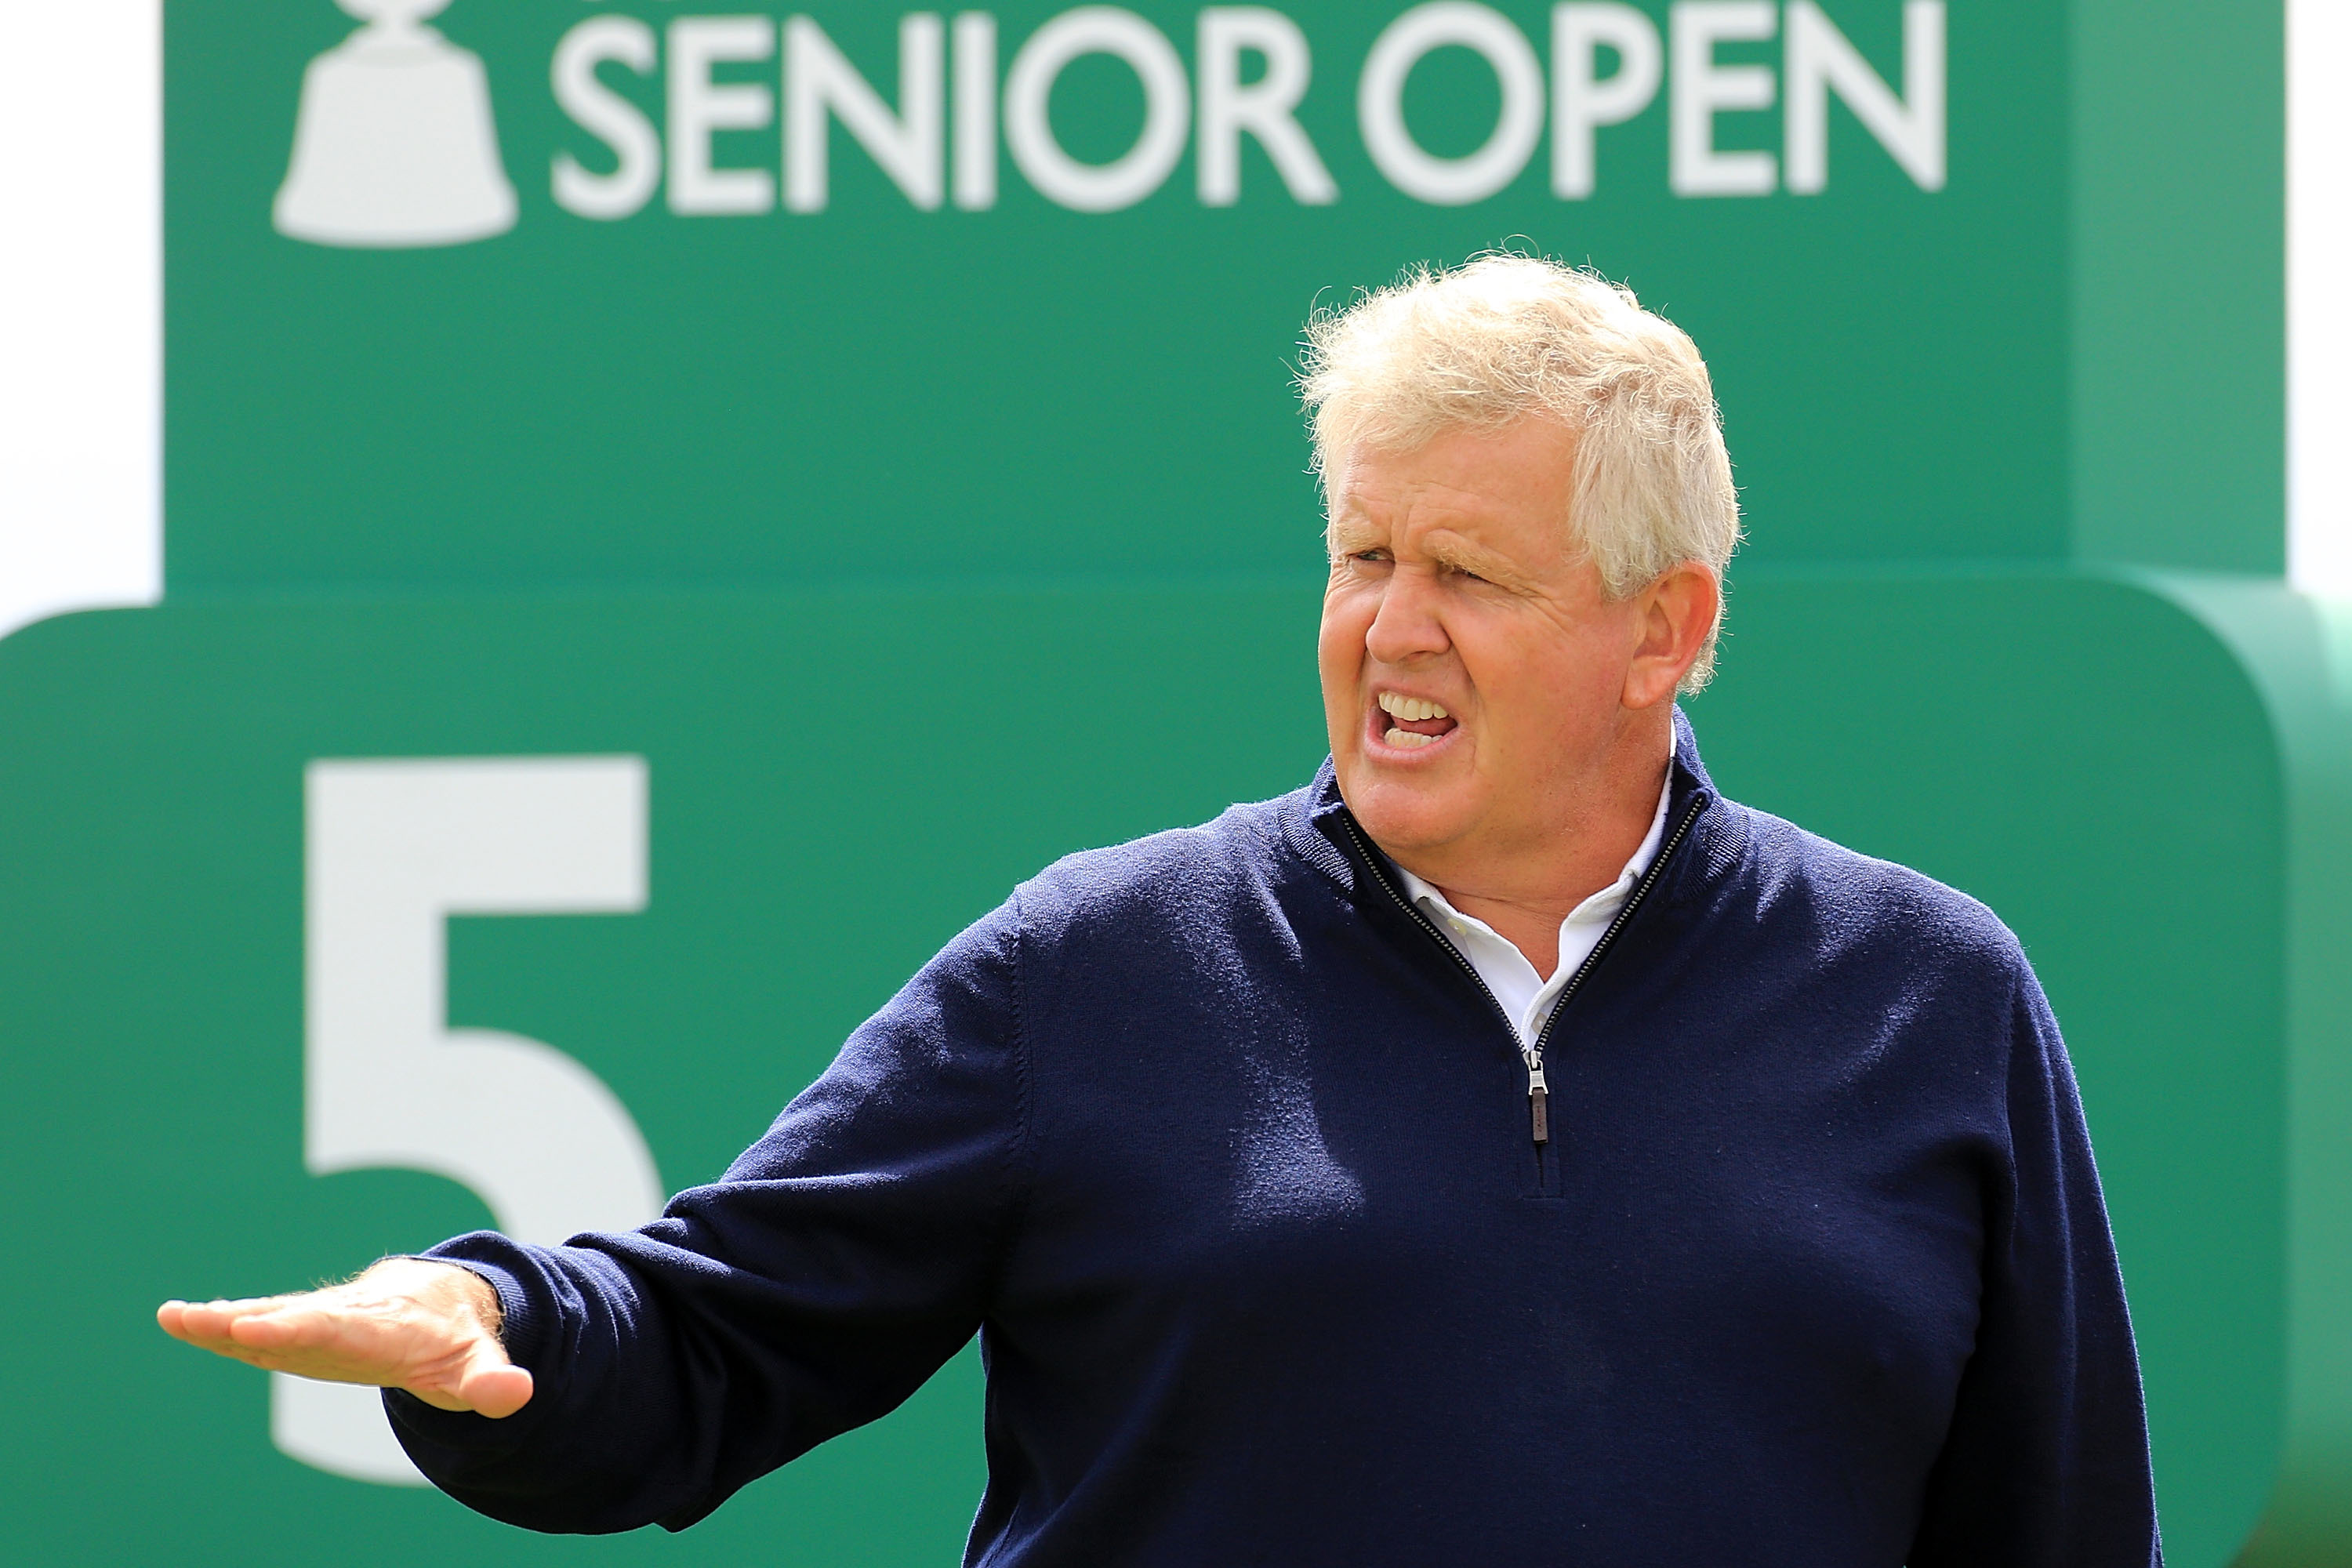 Colin Montgomerie was roughed up by the closing stretch of the Old Course in the first round of the Senior Open.